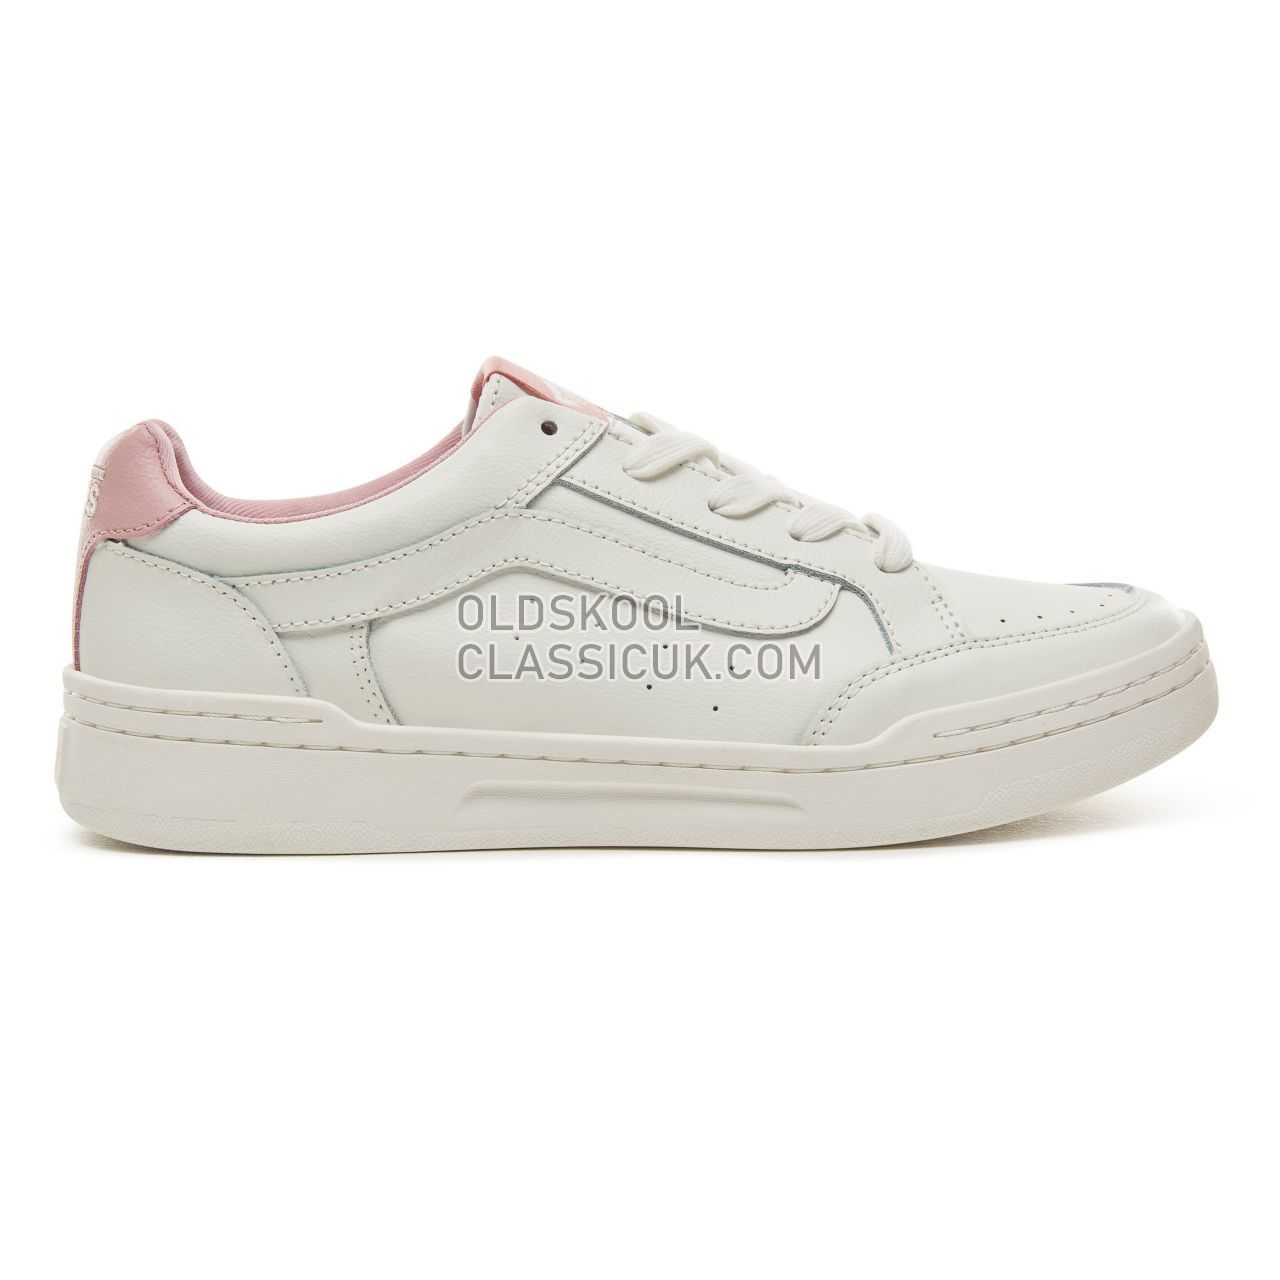 Vans Sporty Highland Sneakers Womens (Sporty) Blanc De Blanc/Zephyr VA38FDU90 Shoes